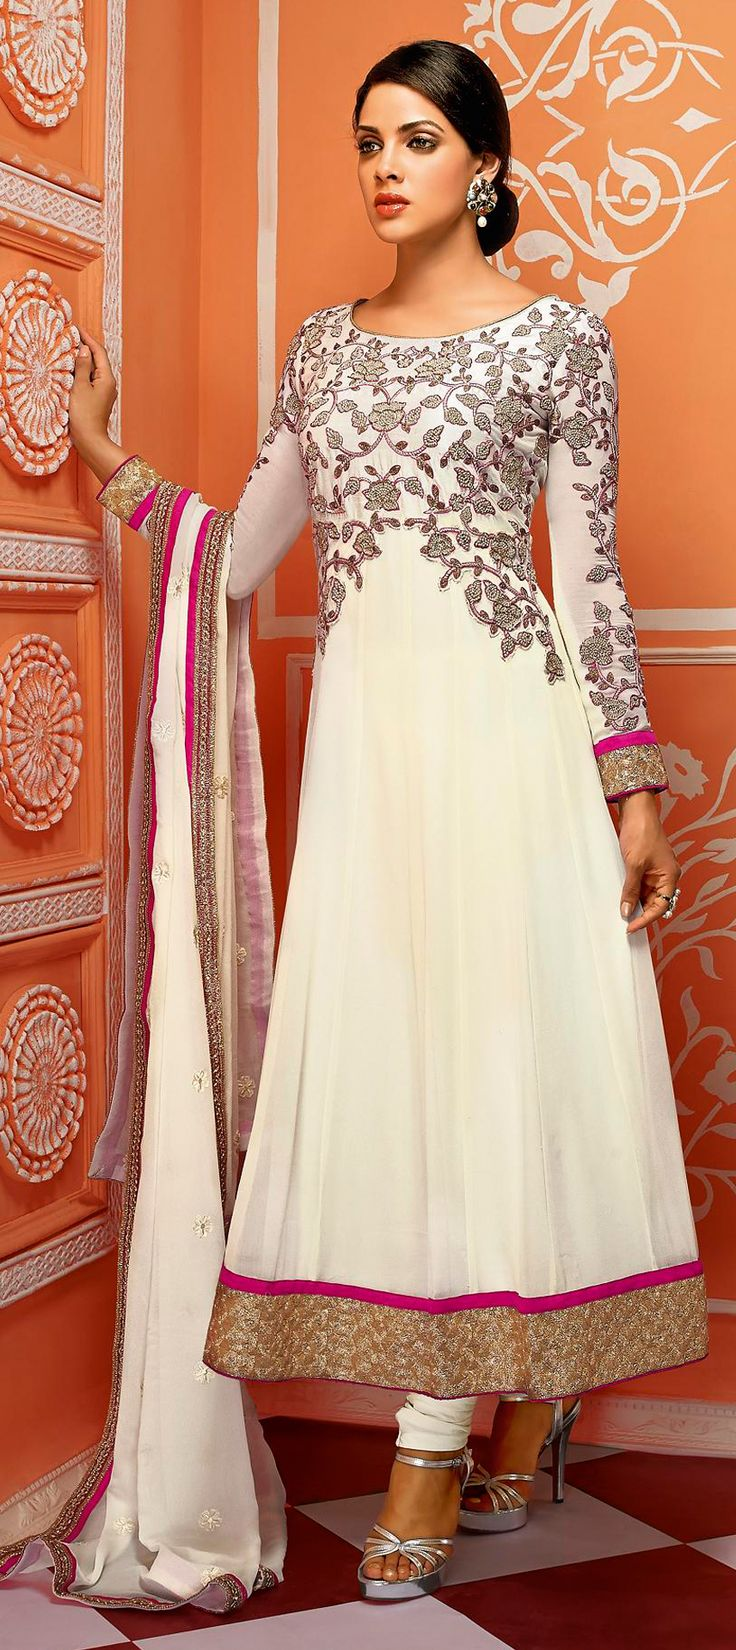 423714: WHITE - new #anarkali in white with floral embroidery. Get your hands on it now!  #partywear #WeddingCouture #sale #indianfashion #onlineshopping